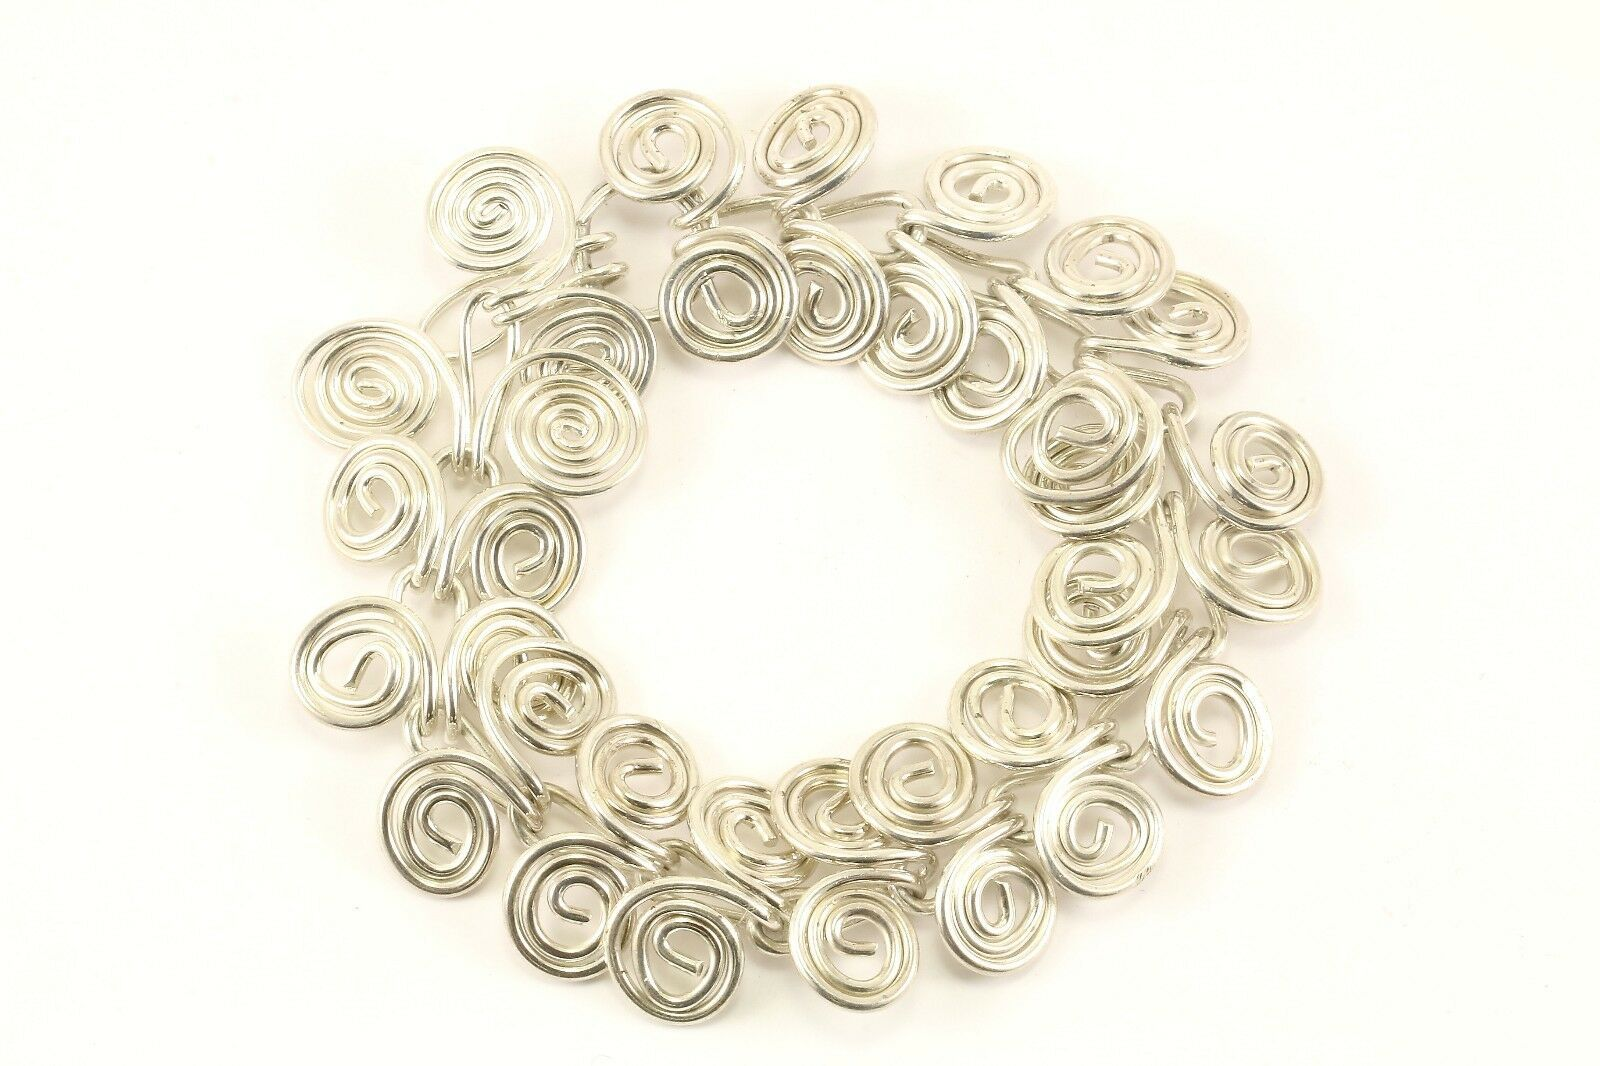 Vintage Swirl Scroll Design Chain Bracelet 925 Sterling BR 3204